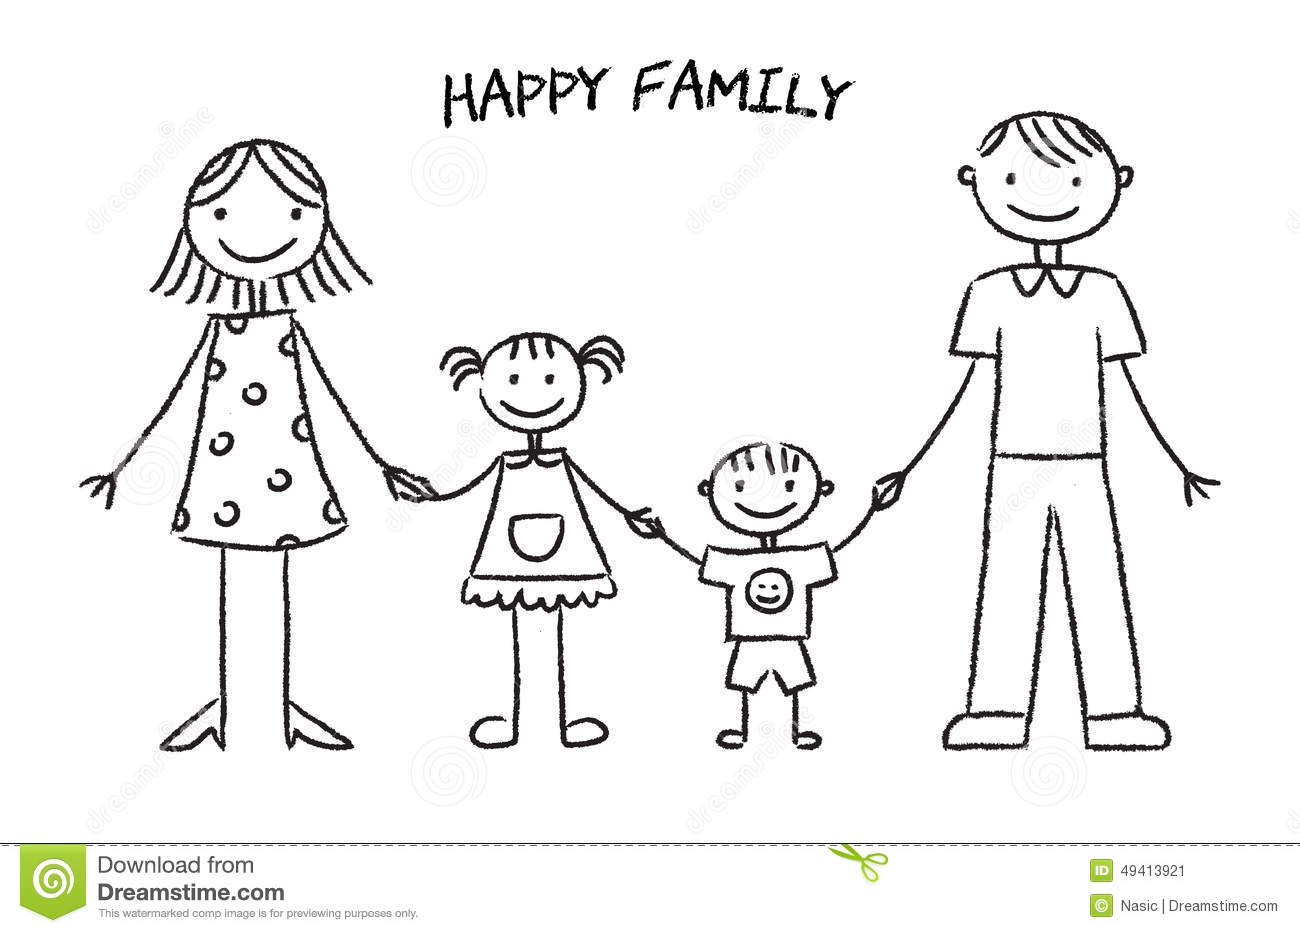 happy family sketch - Drawing Sketch For Kids